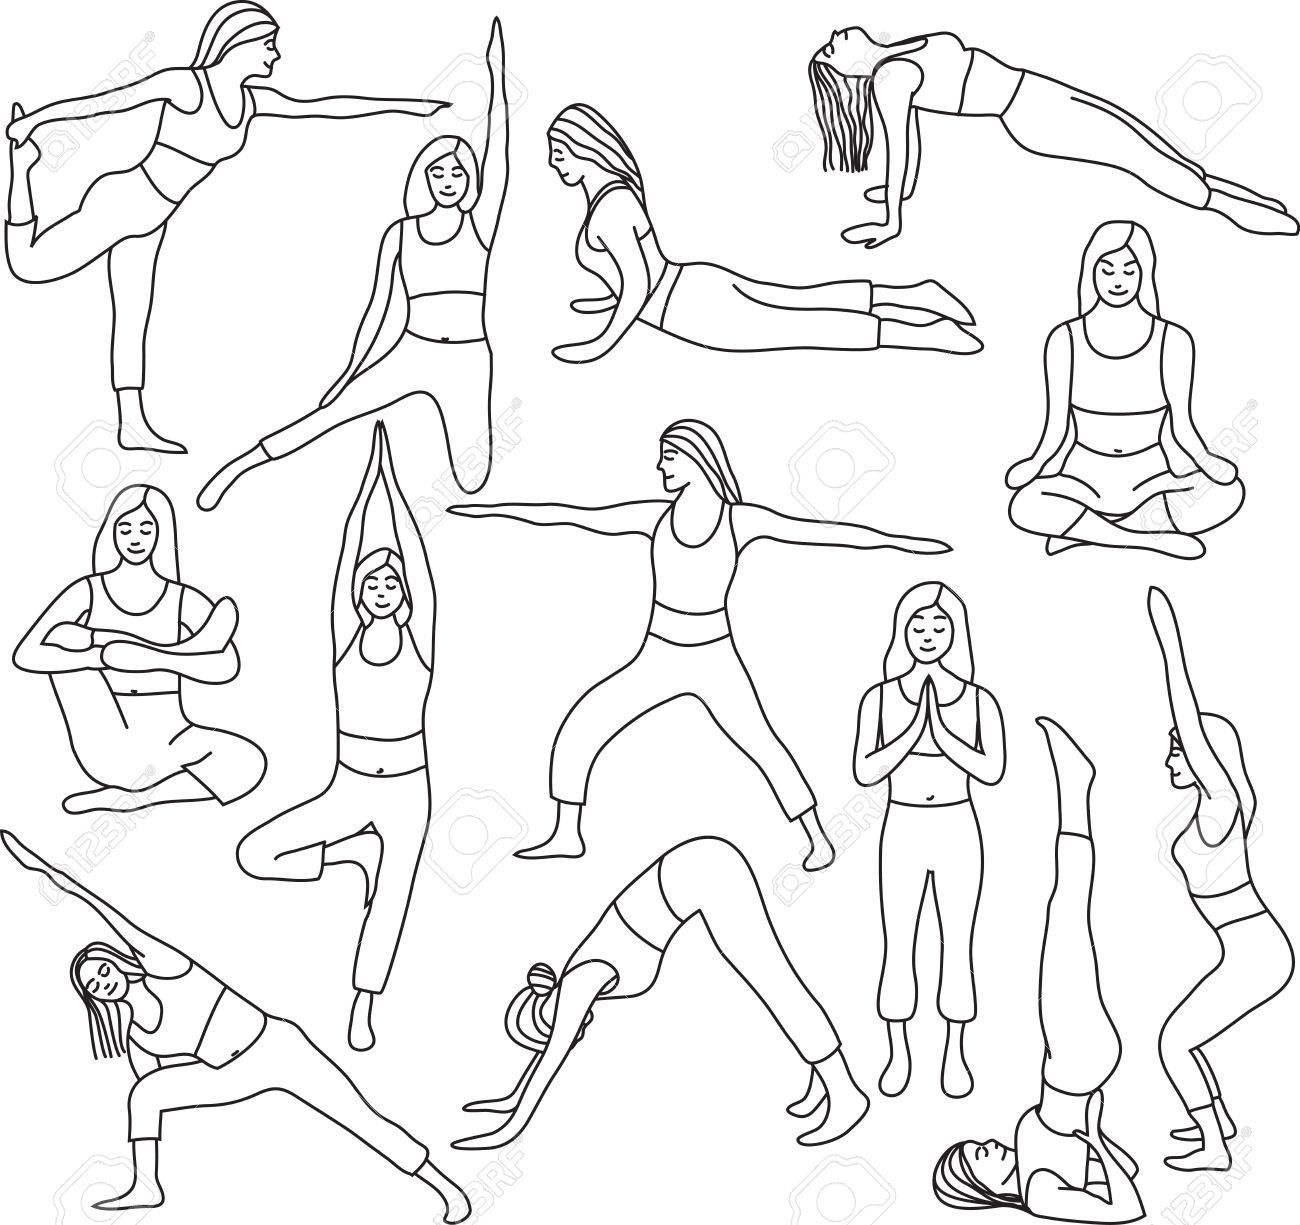 1300x1225 Basic Yoga Pose Drawing